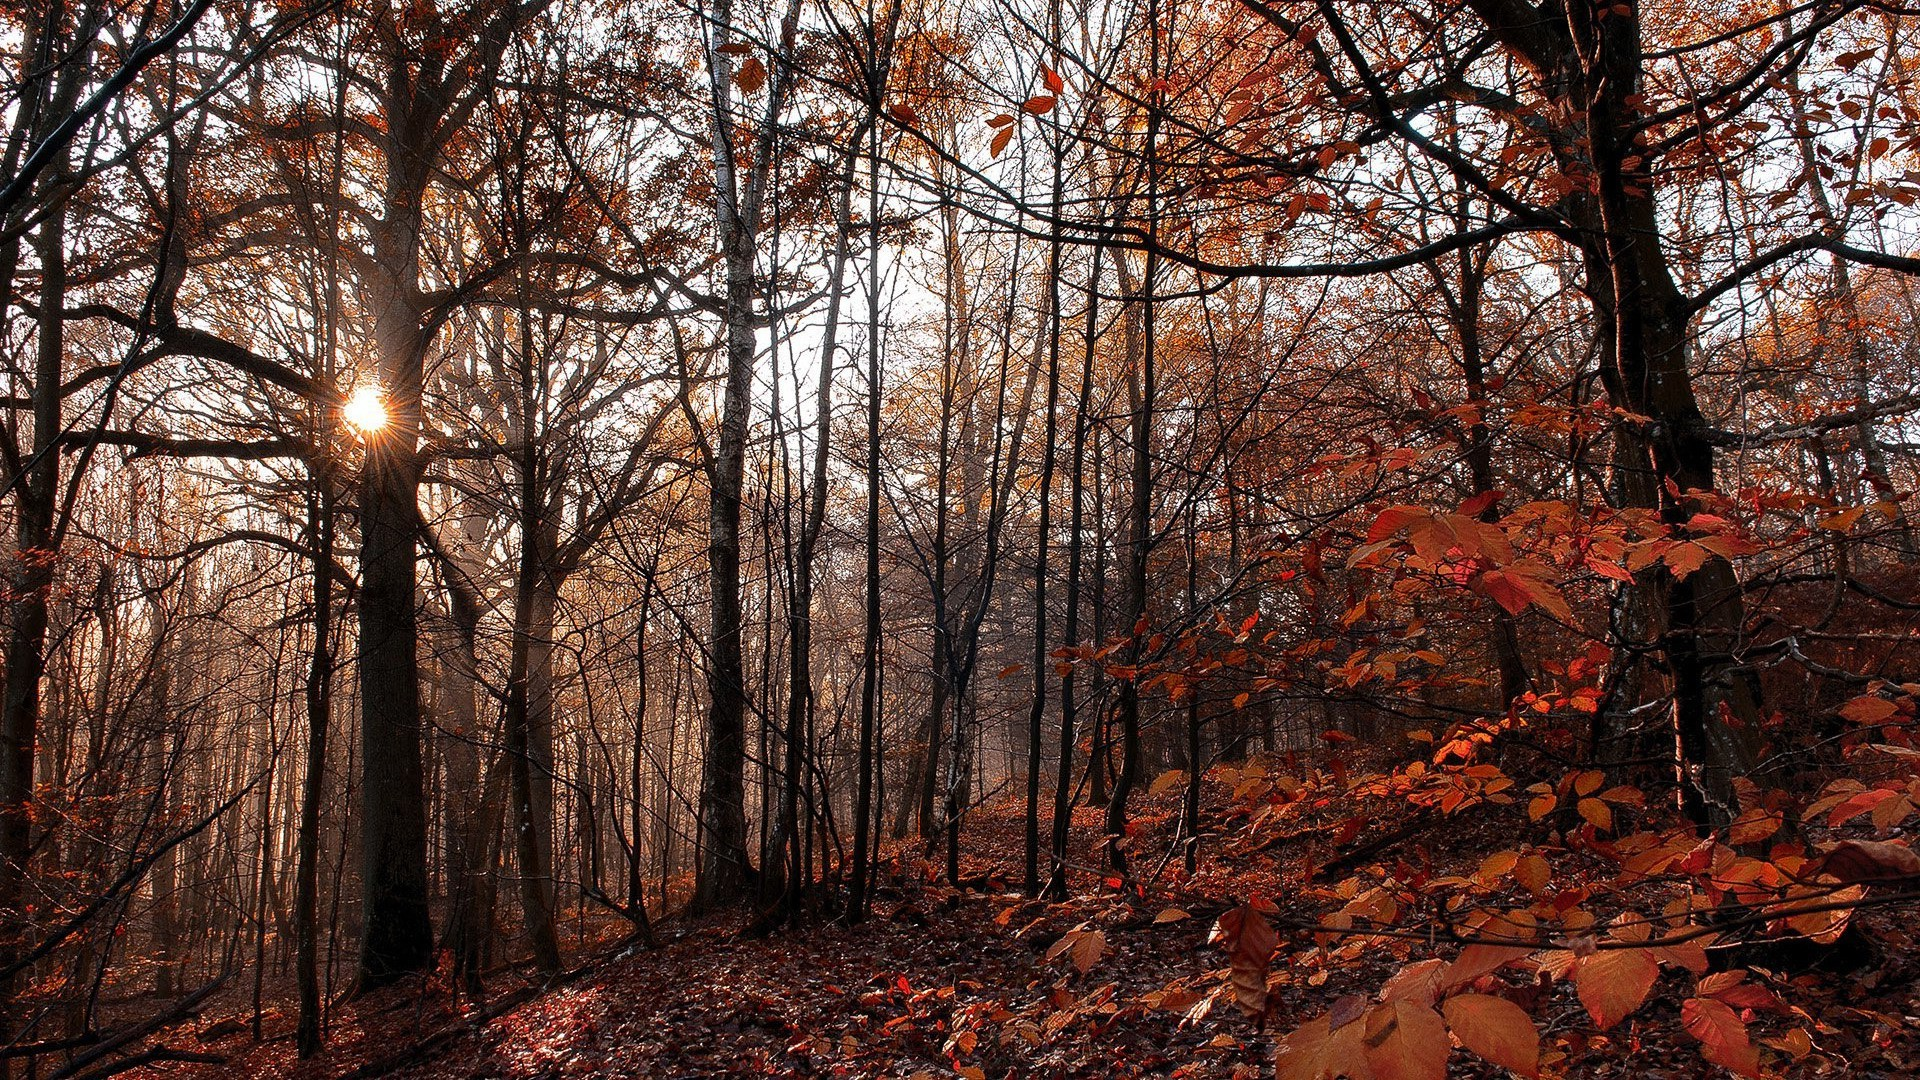 Fall Leaves Hd Desktop Wallpaper Nature Trees Forest Fall Branch Leaves Yellow Wood